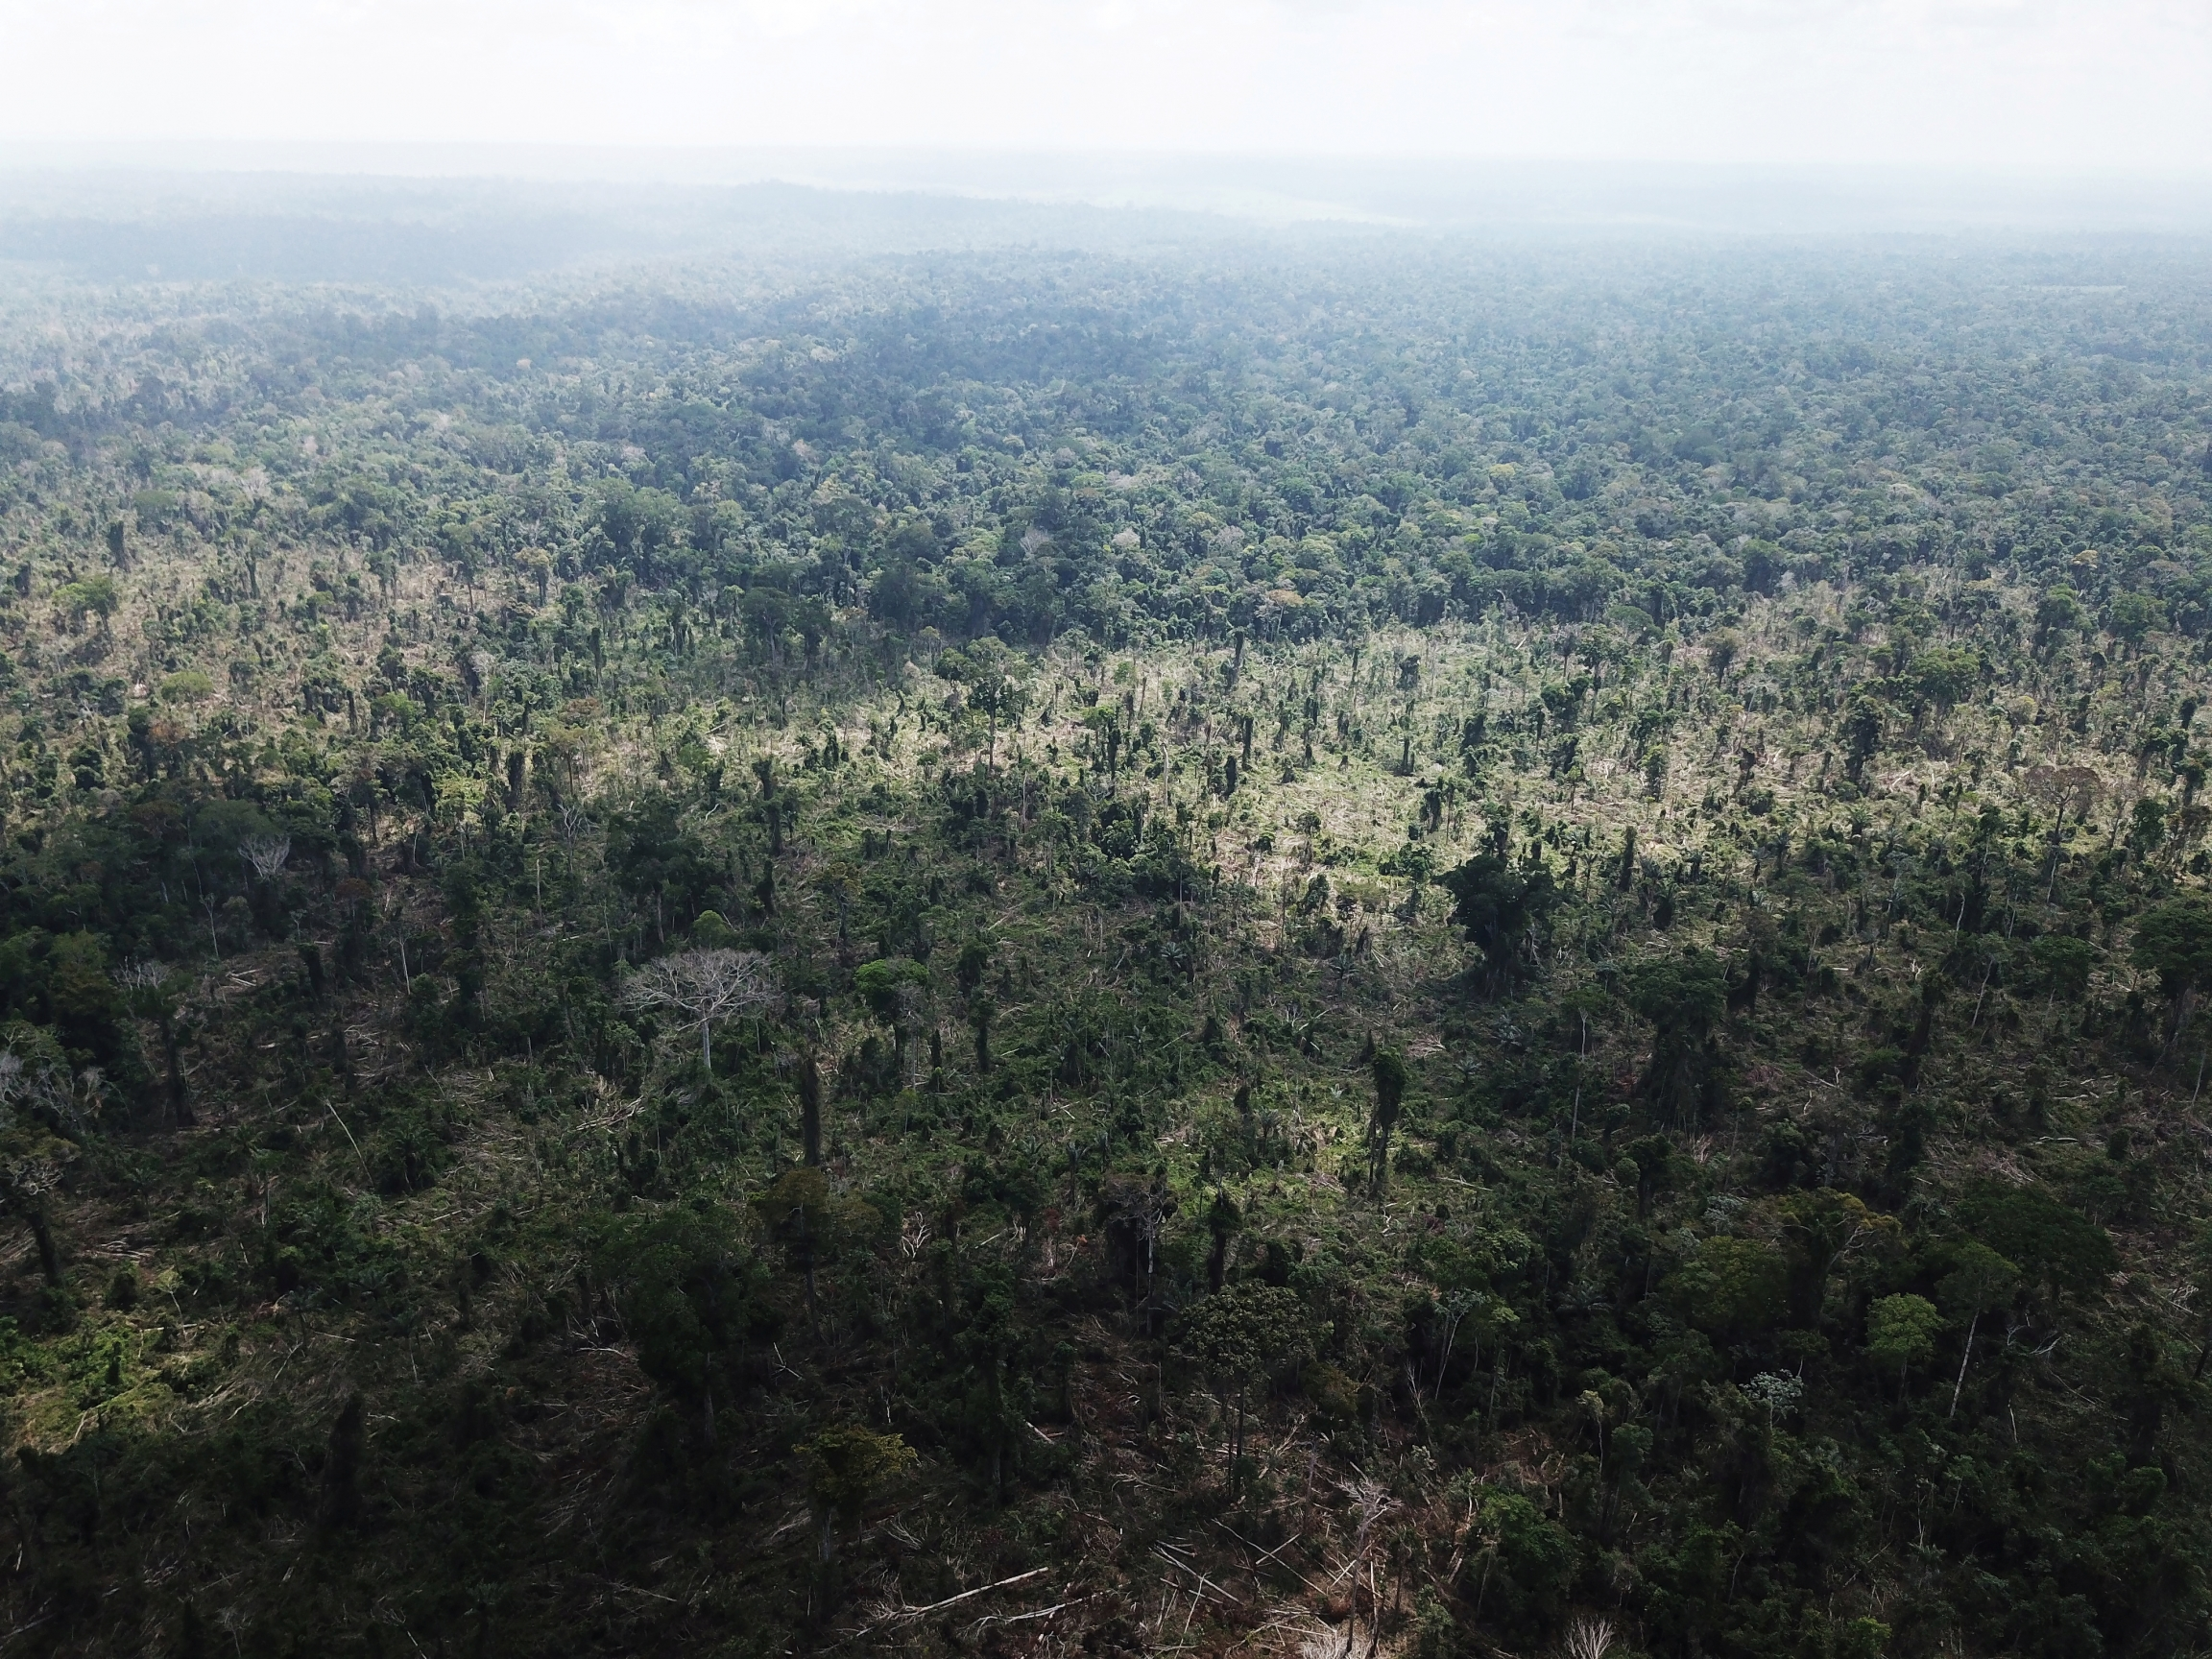 An aerial view of the Amazon with a portion cleared.